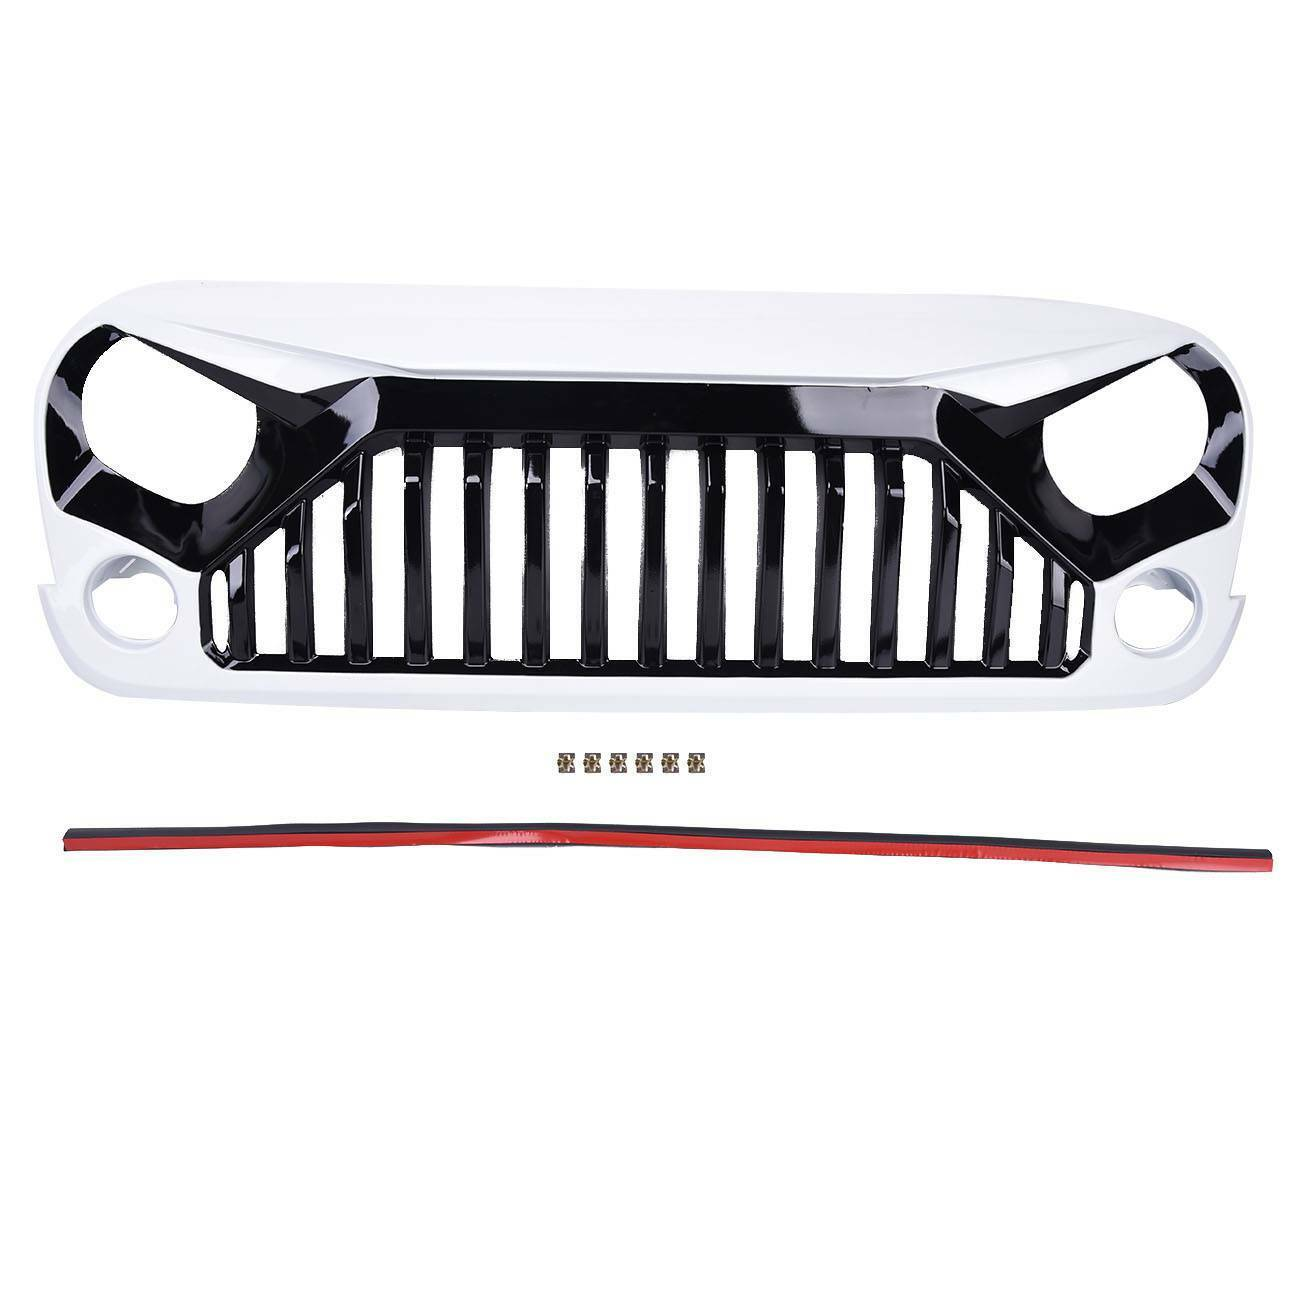 Front White Angry Bird Bumper Hood Grill Grille for Jeep 07-17 Wrangler JK